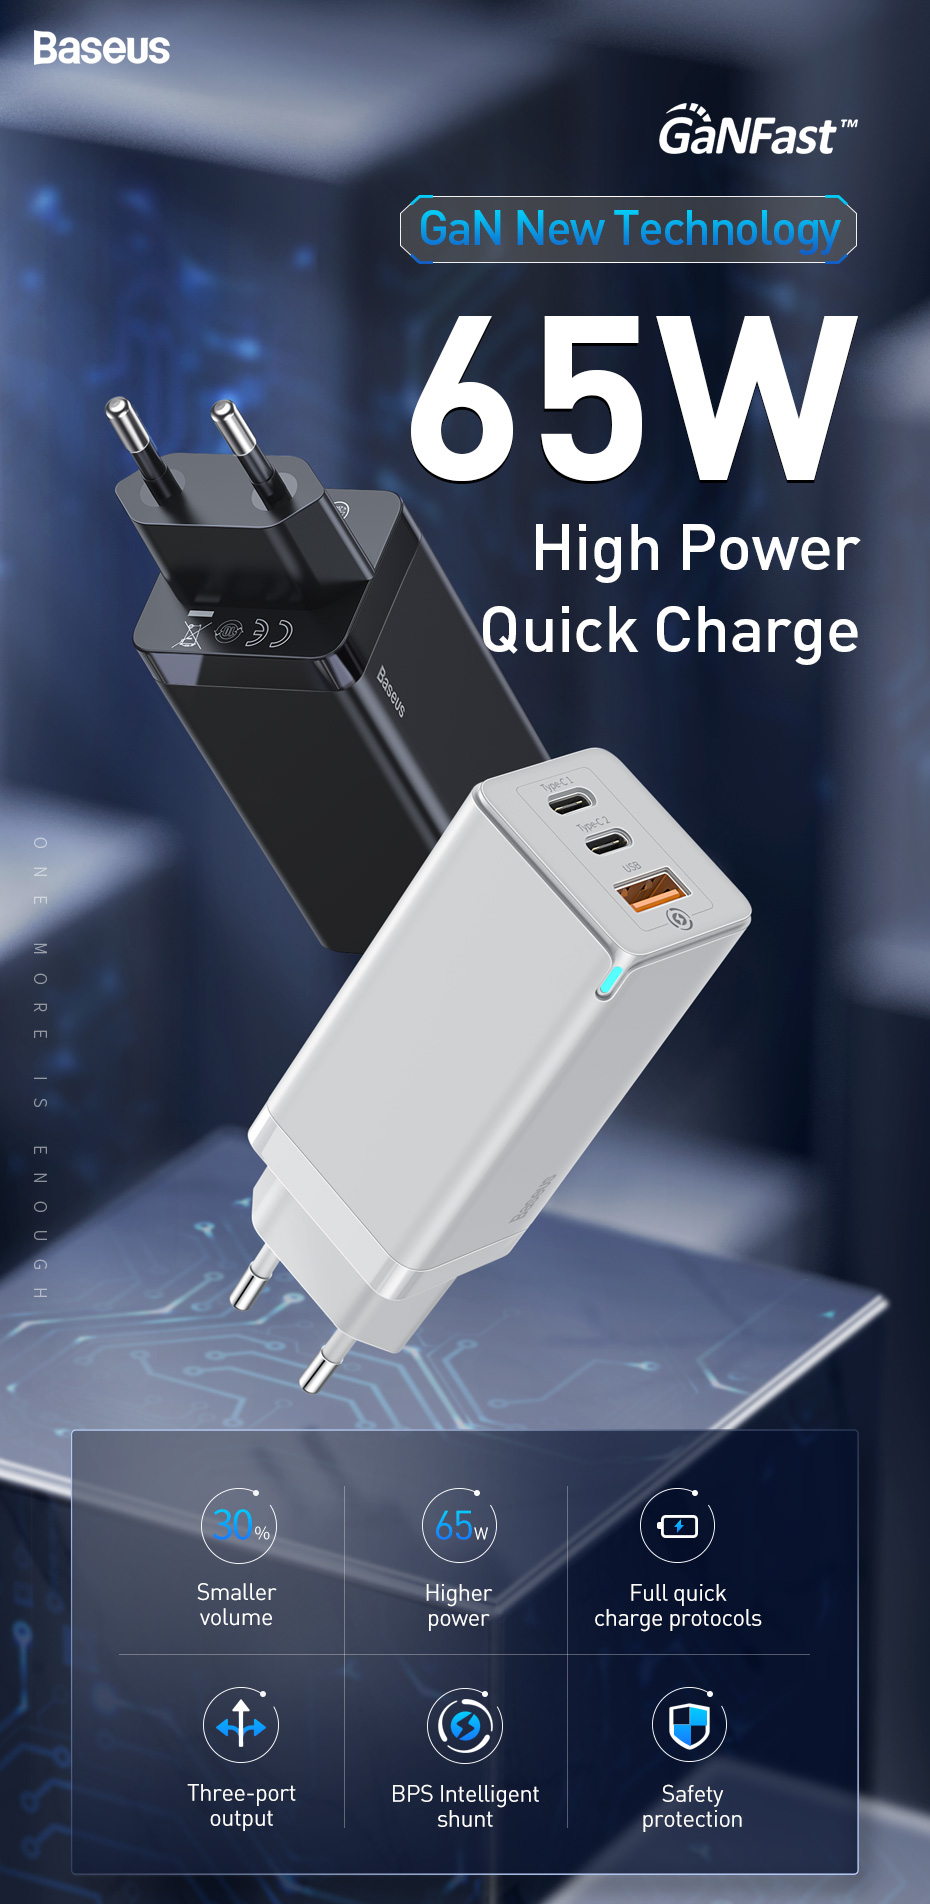 Baseus 65W GaN Charger Quick Charge 5